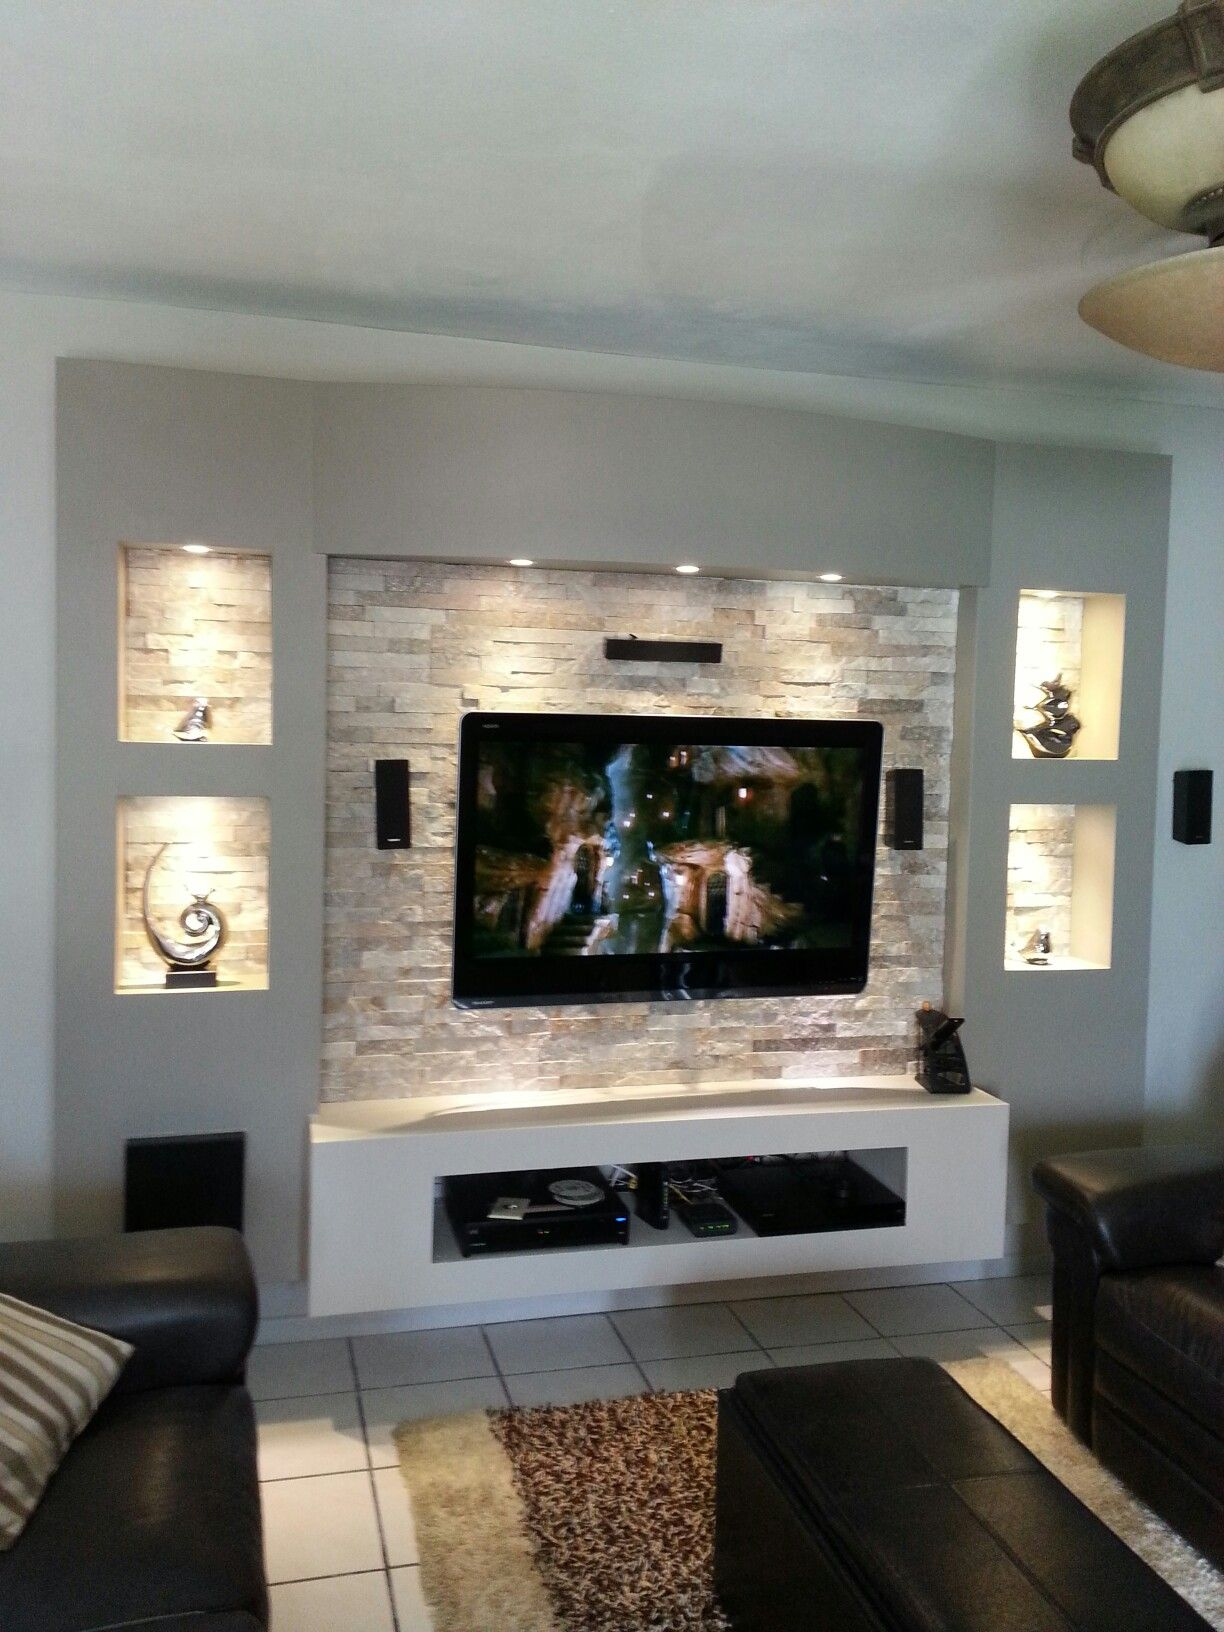 Tv Unit In Living Room: Cheap Living Room Decor